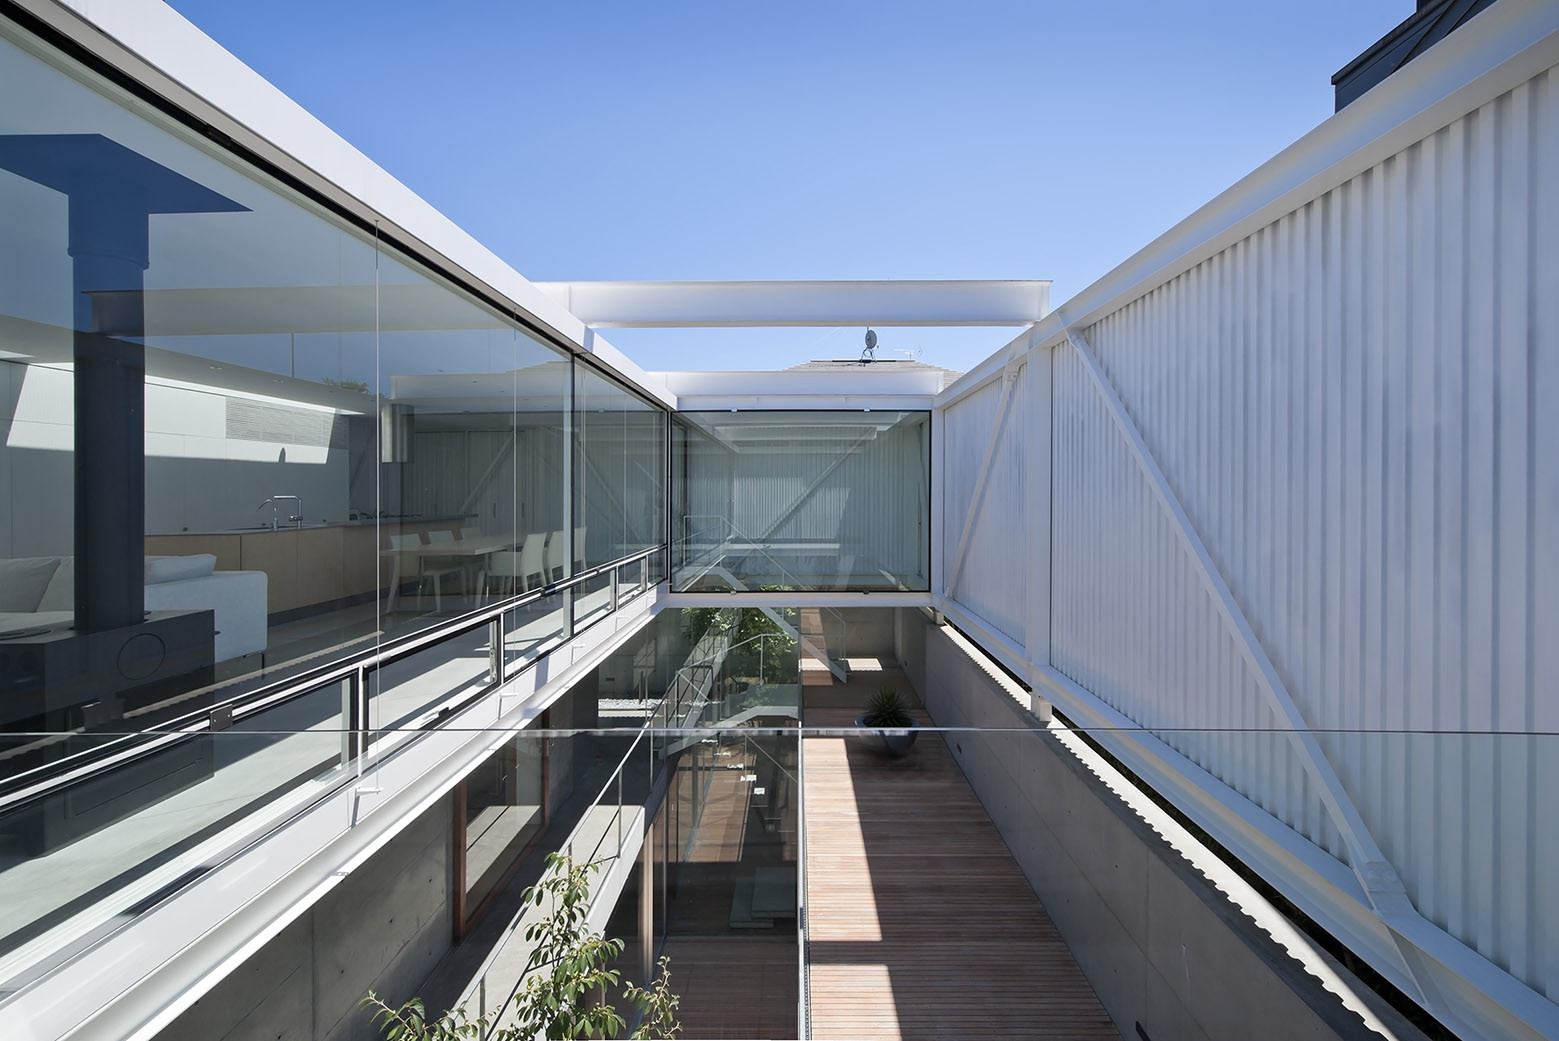 Patio / Yaita and Associates